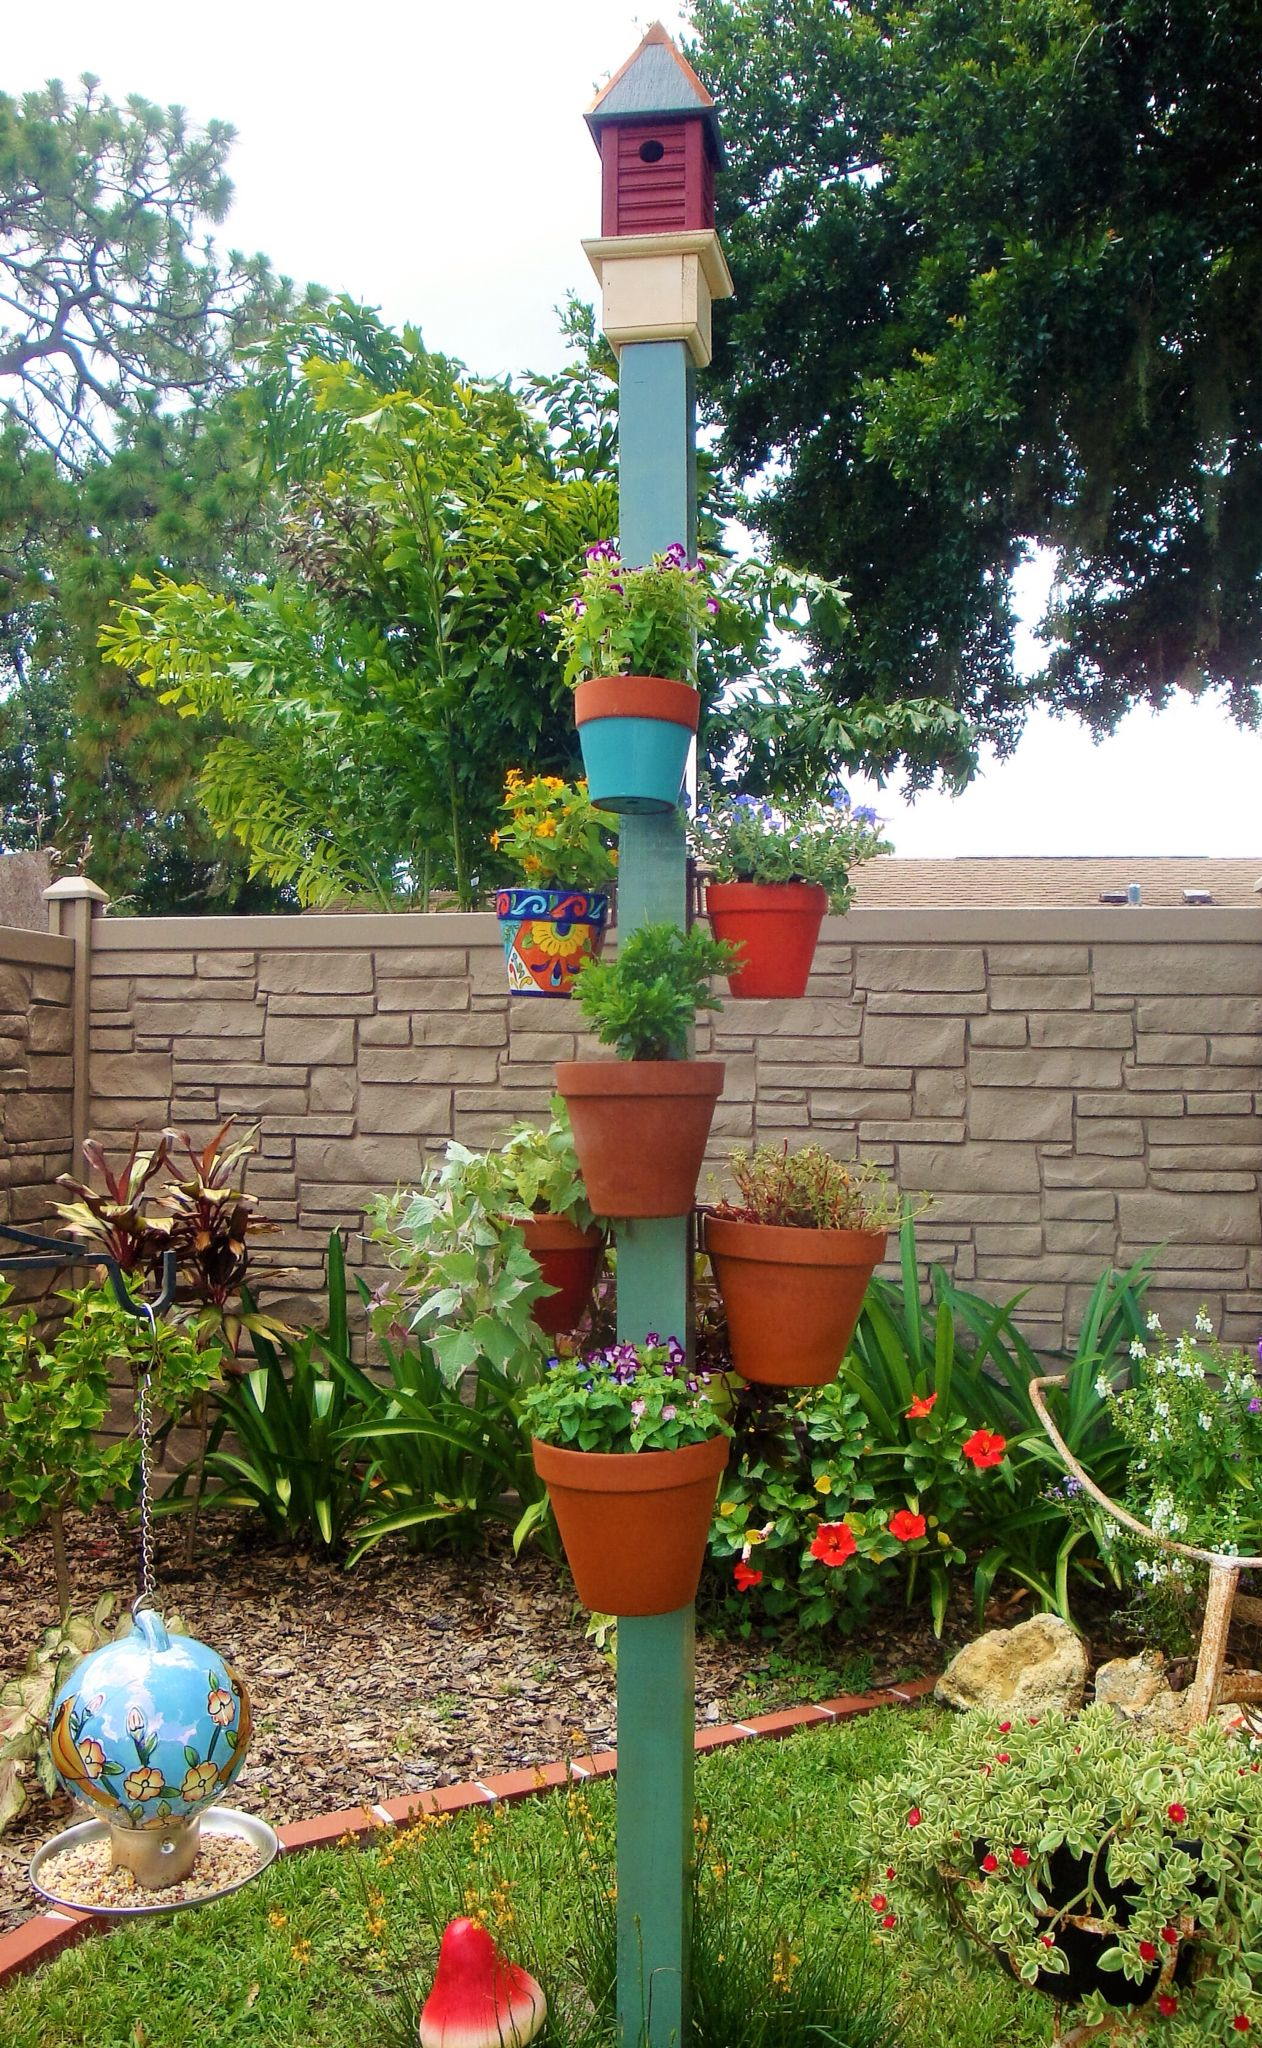 Bird House Pole With Hanging Clay Pots Secured With Hangapot Hangers Hanging Flower Pots Flower Pole Hanging Planters